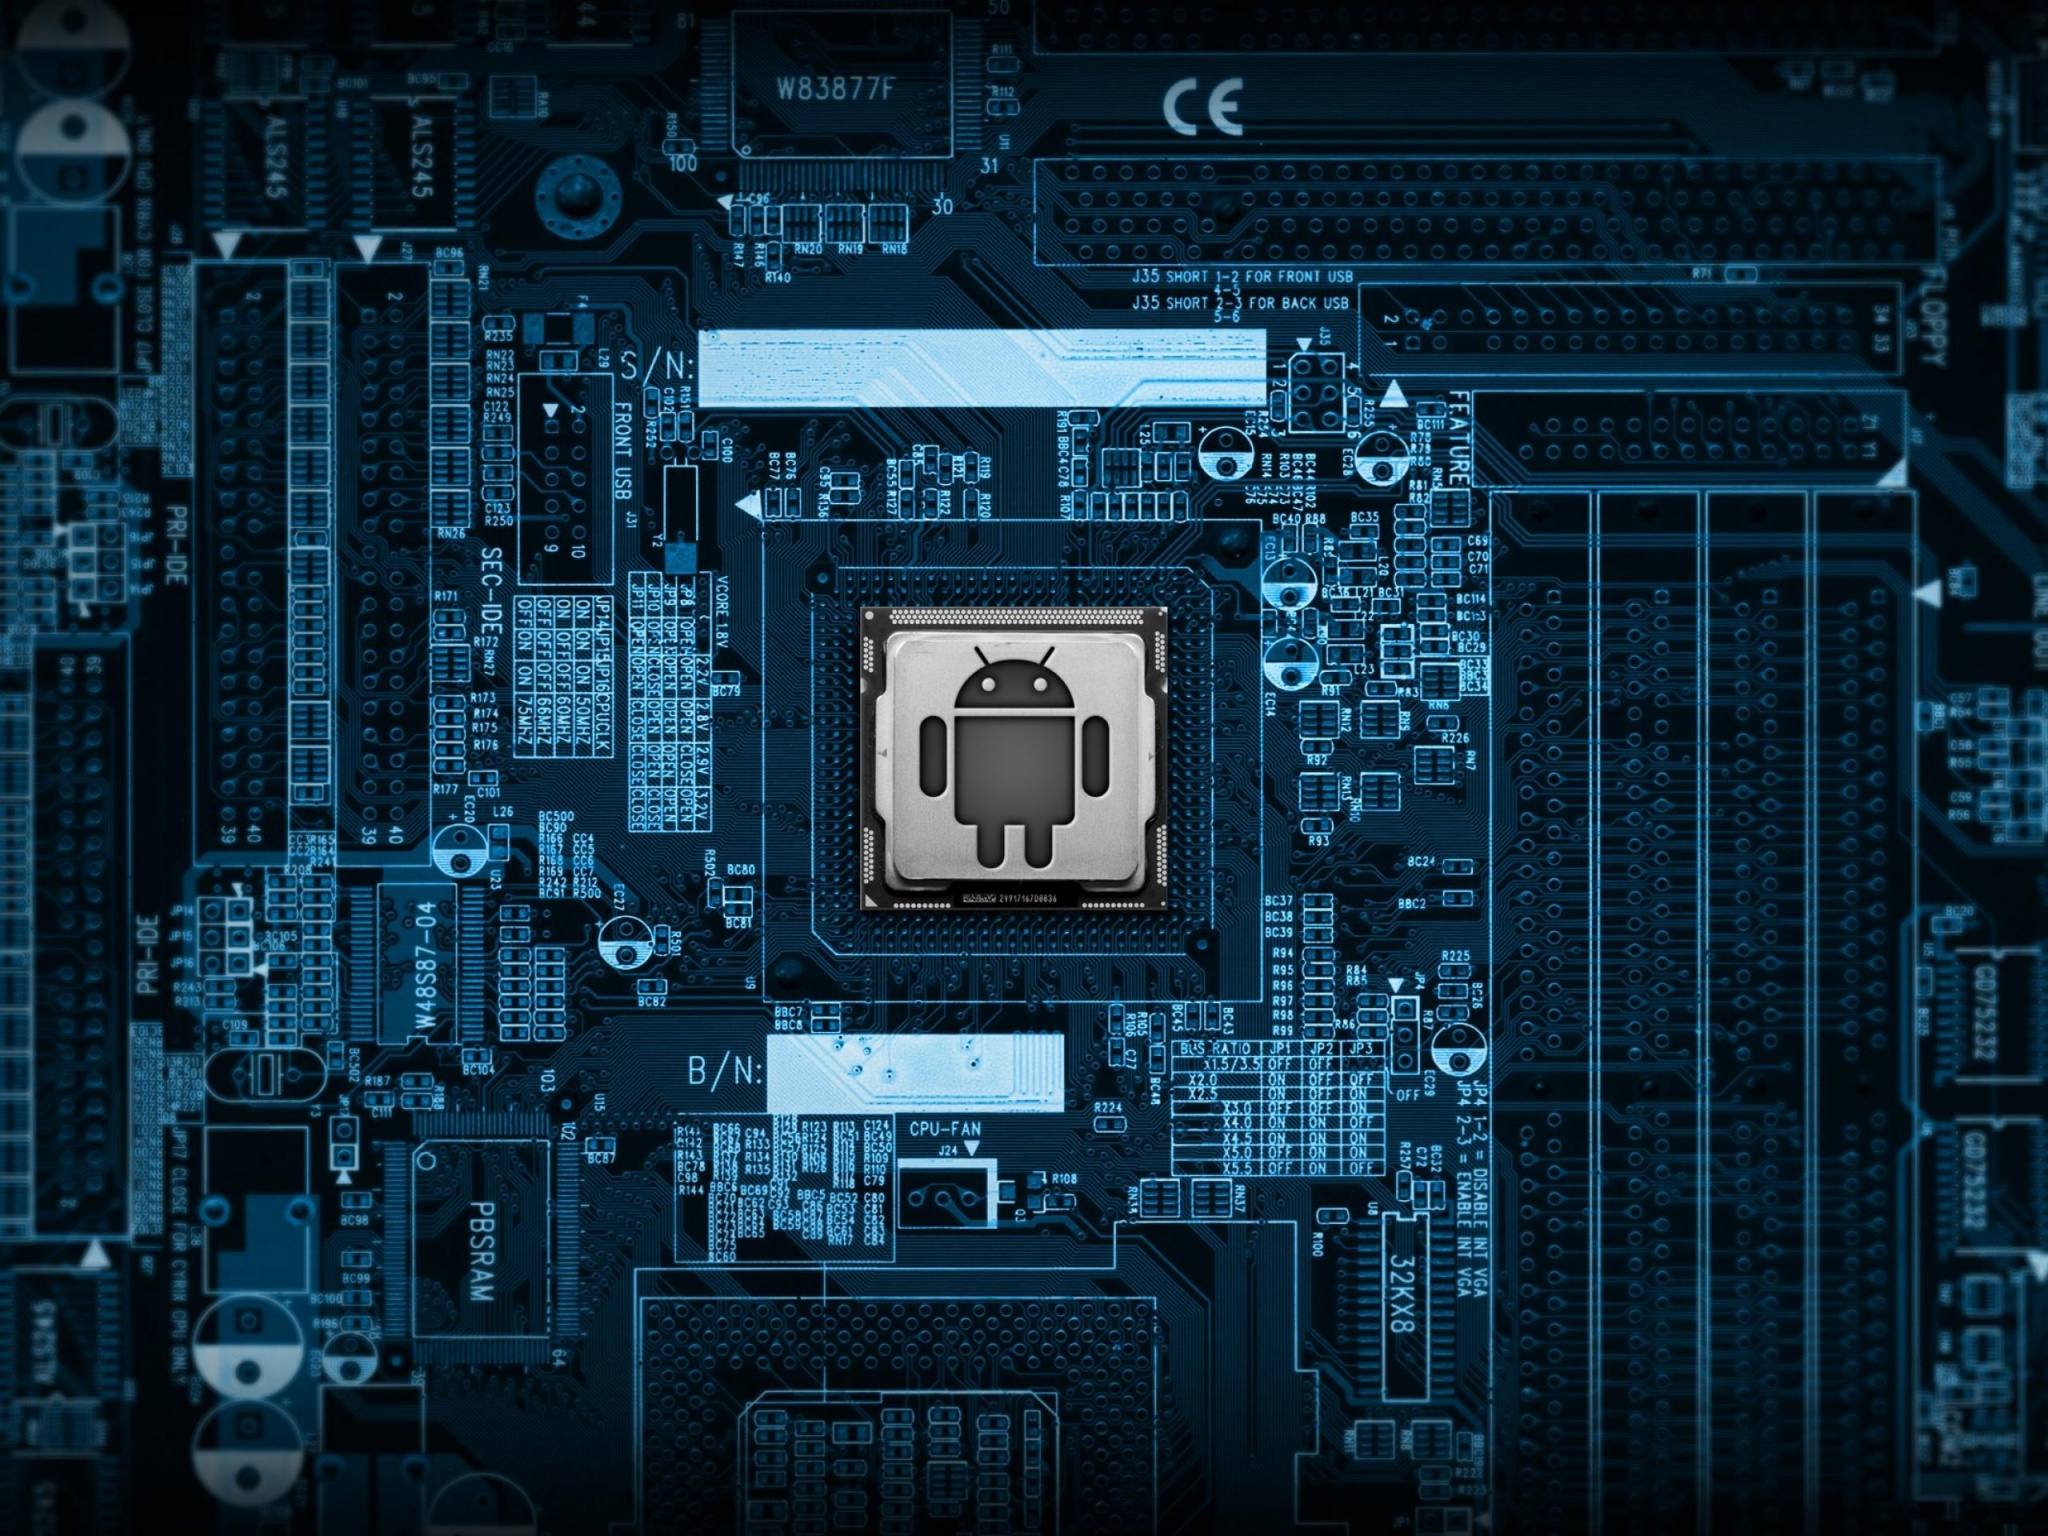 android motherboard wallpapers - 2048x1536 - 1044489